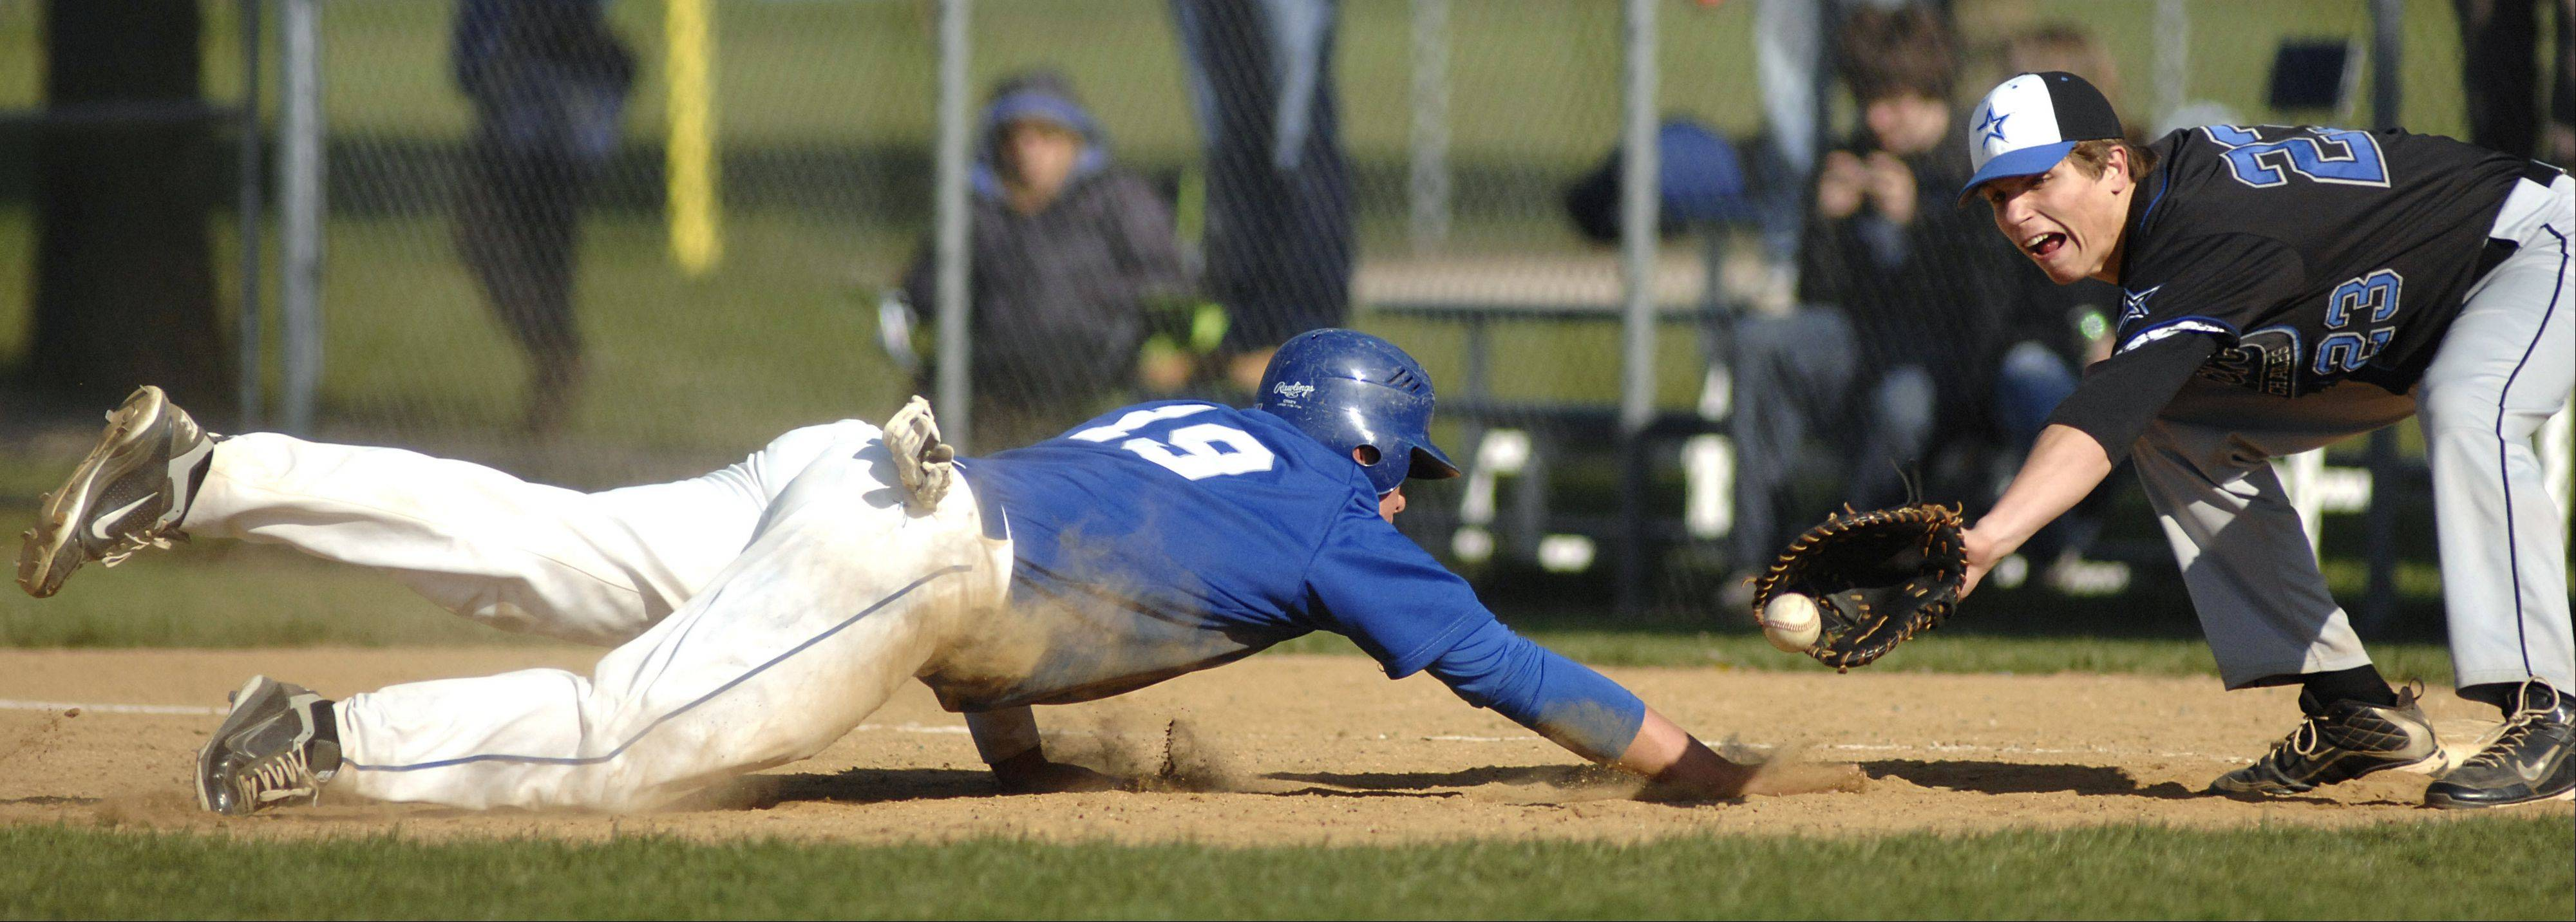 Laura Stoecker/lstoecker@dailyherald.comGeneva's Anthony Bragg is safe back on first base from St. Charles North's Ryan Thomas in the second inning on Thursday, April 26.